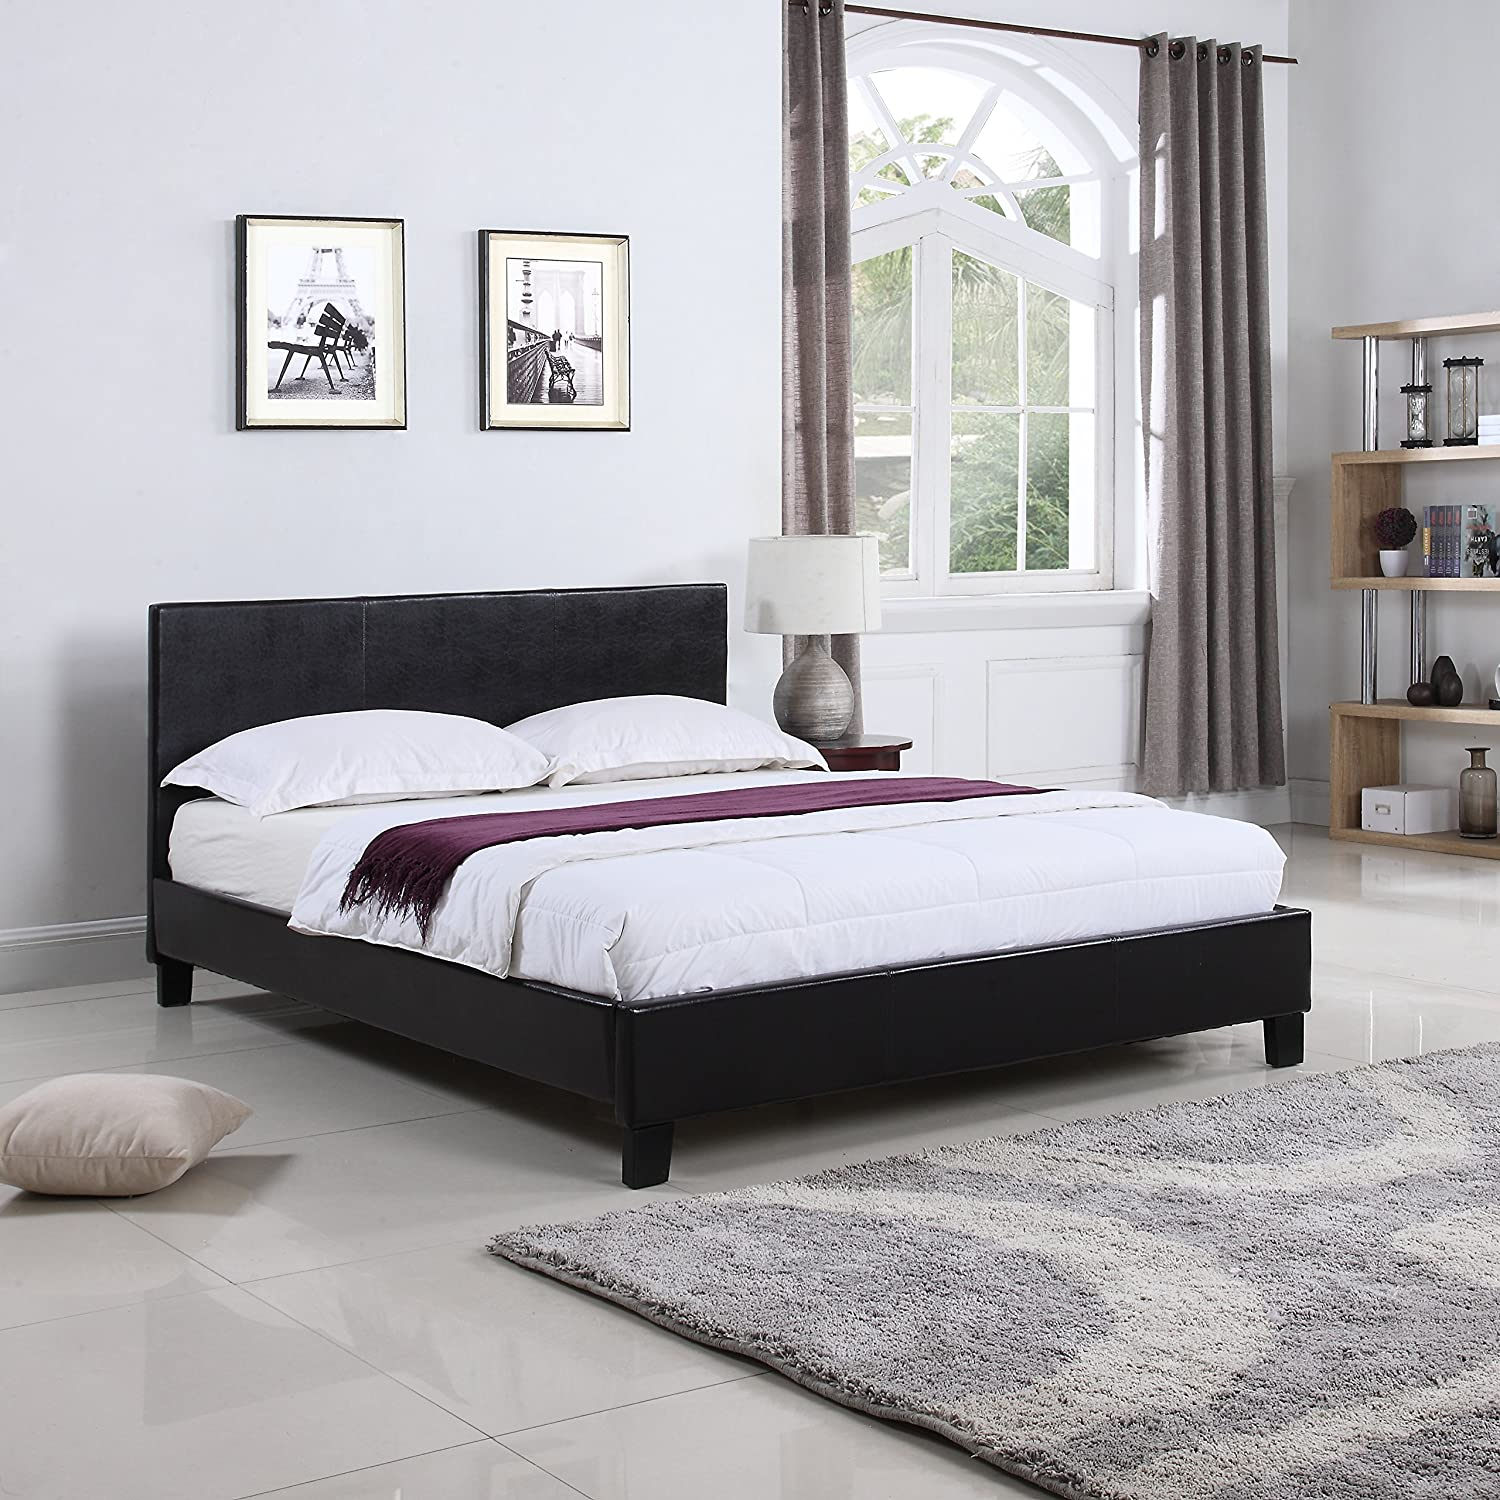 Divano Roma Furniture Classic Deluxe Bonded Leather Low Profile Platform Bed Frame with Paneled Headboard Design (Queen)